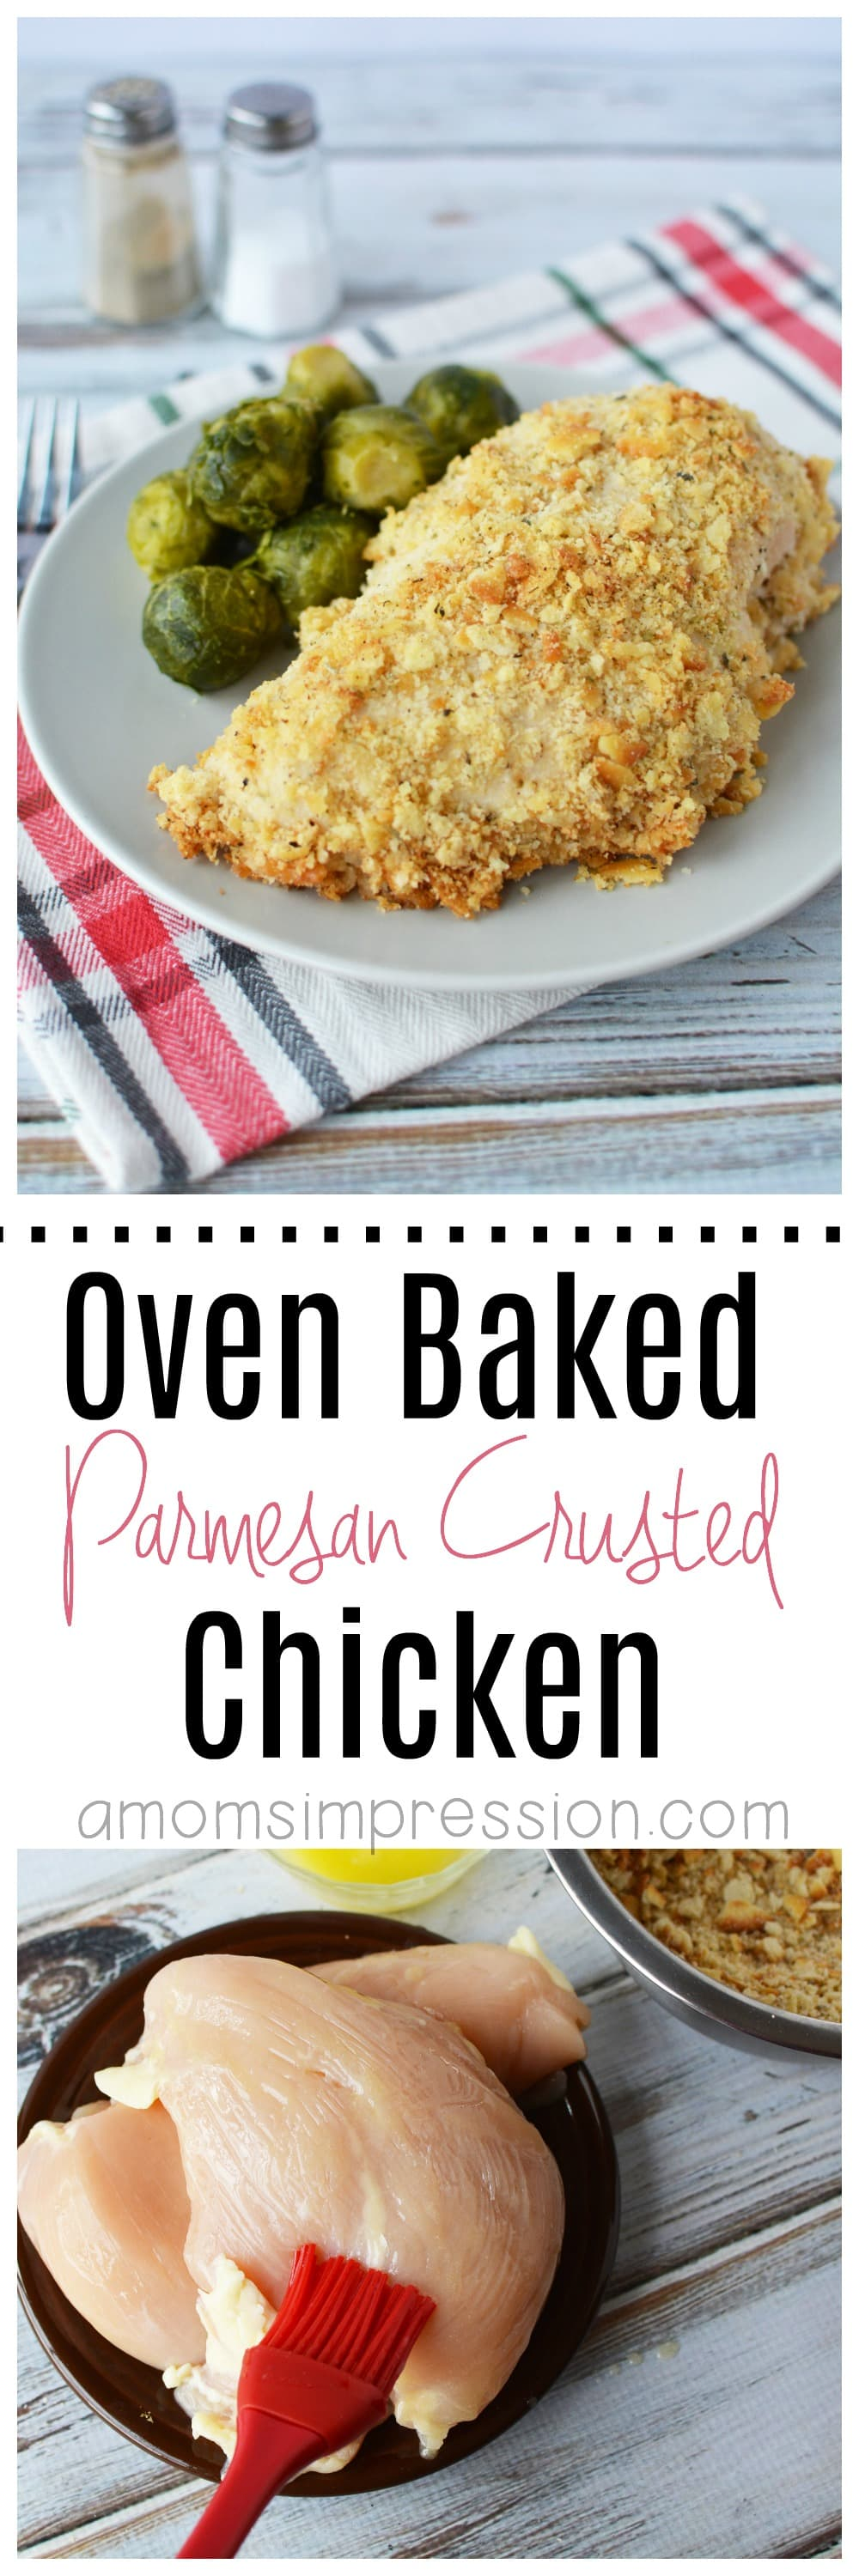 Looking to cut out a few calories? This healthier for you oven baked parmesan crusted chicken is easy to make and a lot better than the fried version. #parmesanchicken